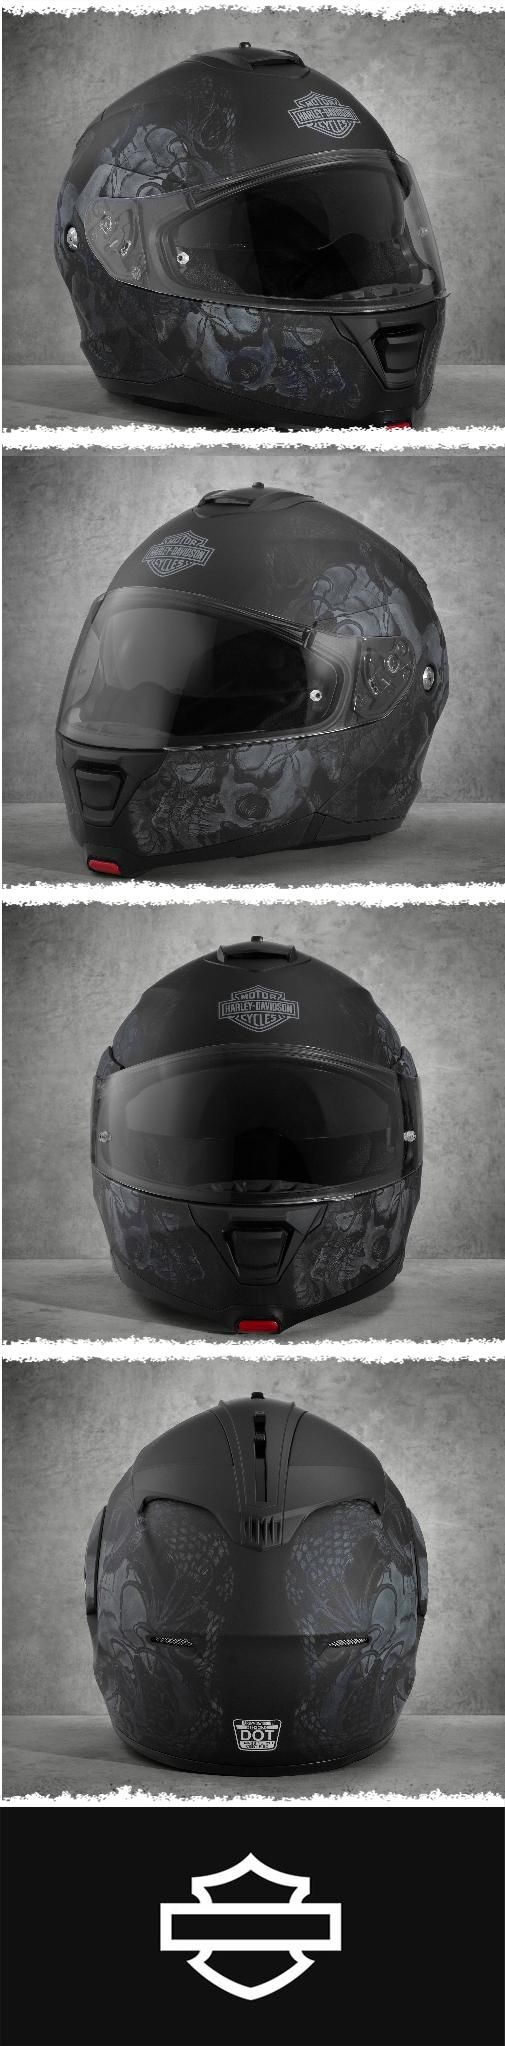 As if high-end features aren't enough, this head gear portrays a wicked mash-up of venomous snake and evil skull. | Harley-Davidson Men's Intrepid Sun Shield H24 Modular Helmet